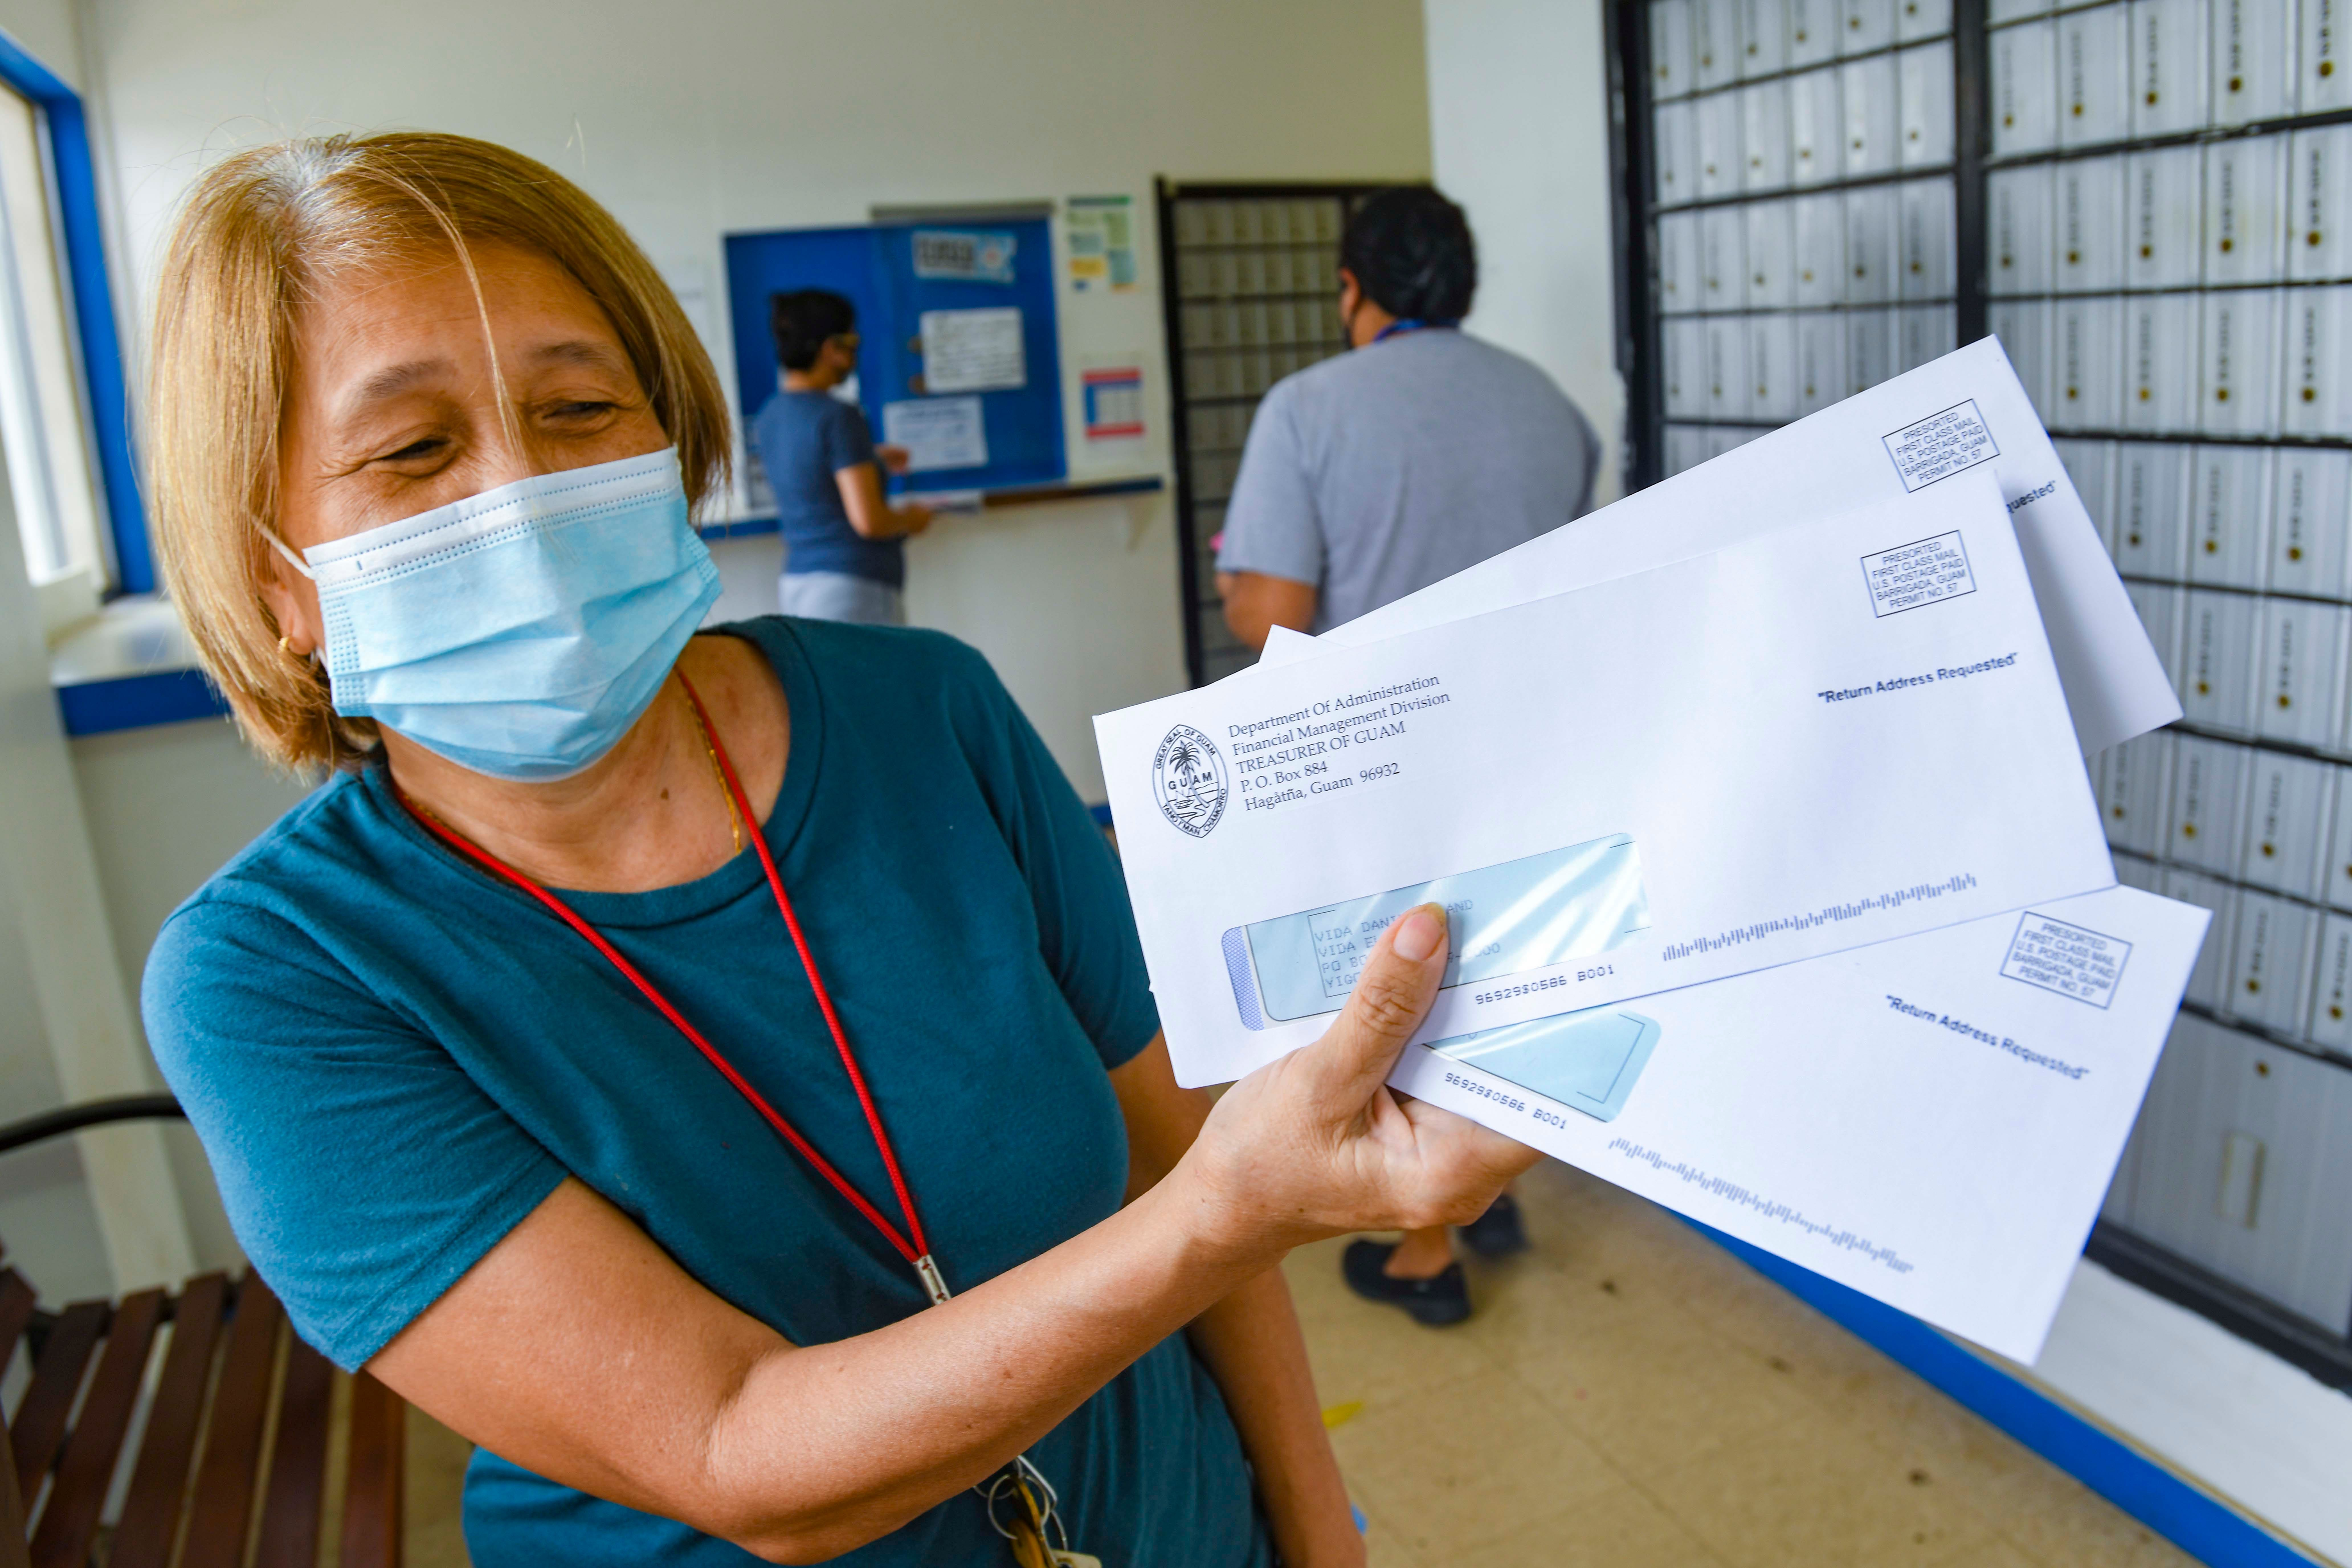 Yigo resident Elisa Vida shows three envelopes containing stimulus checks for her and other household members she received after checking her mailbox at the post office in Yigo in this April 16 file photo. The Department of Administration has publisheda list of individuals with uncashed Economic Impact Payment checks, also known as stimulus checks, on its website.